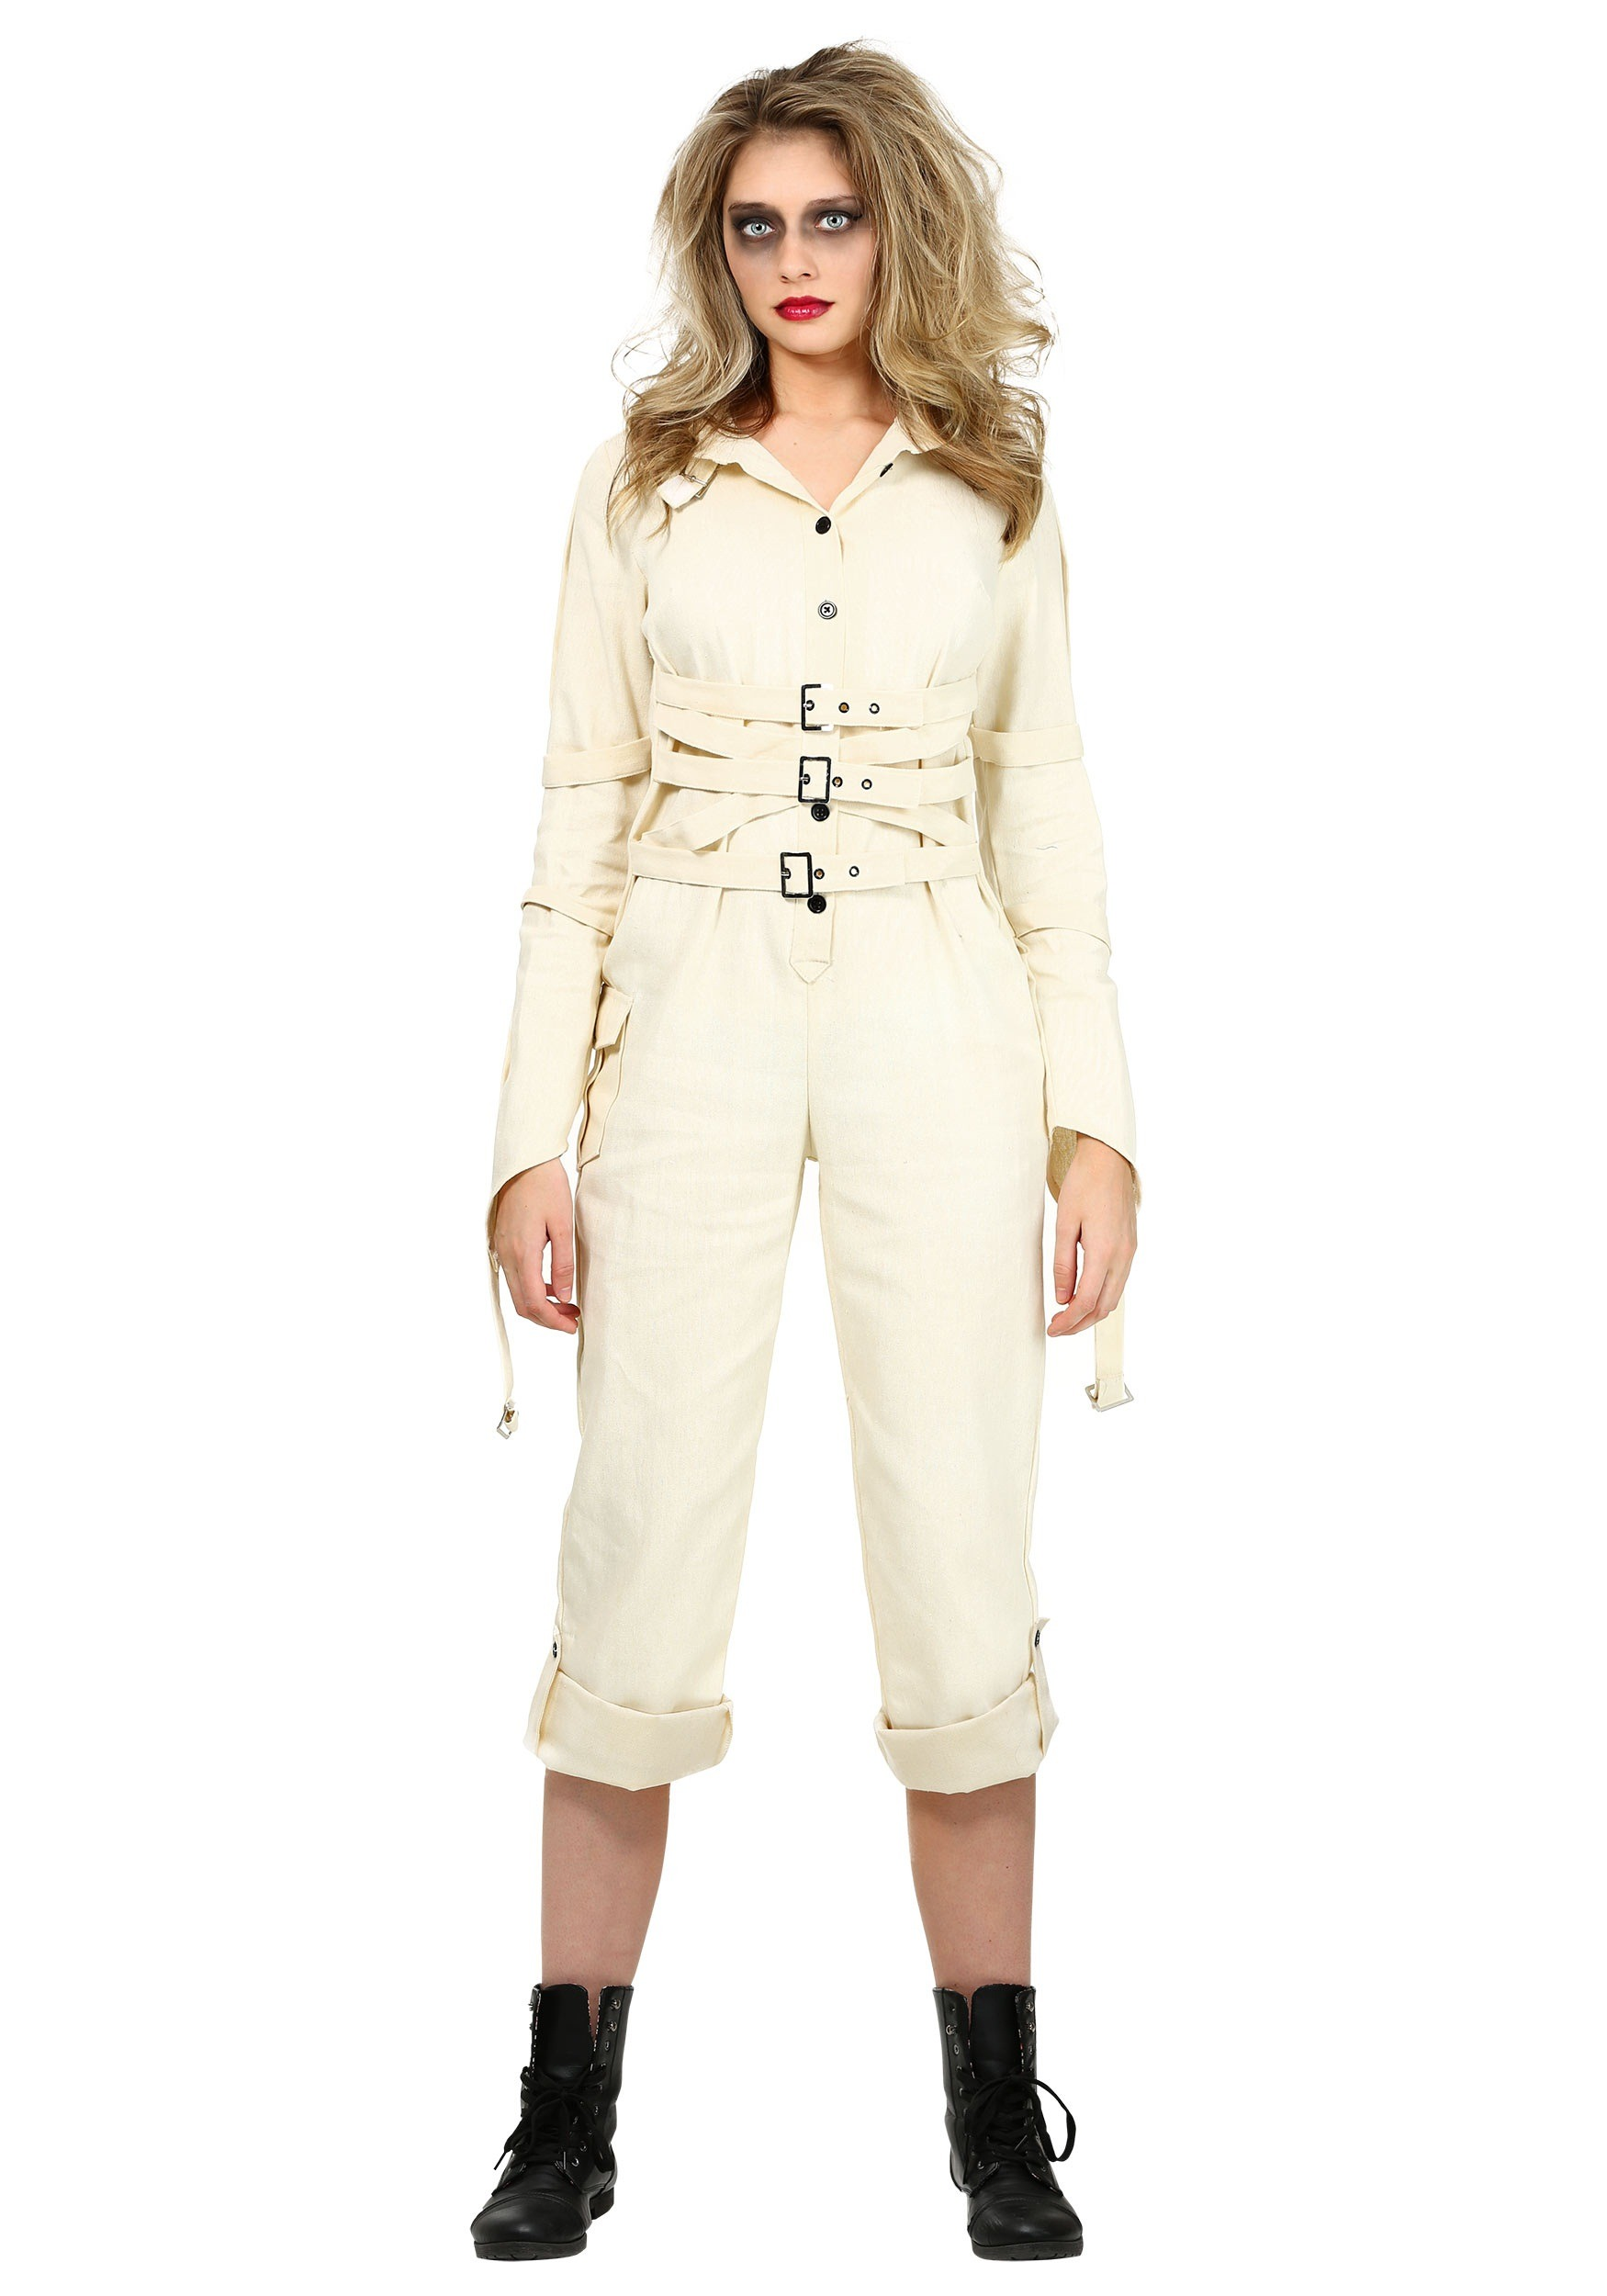 Women's Insane Asylum Straitjacket Costume